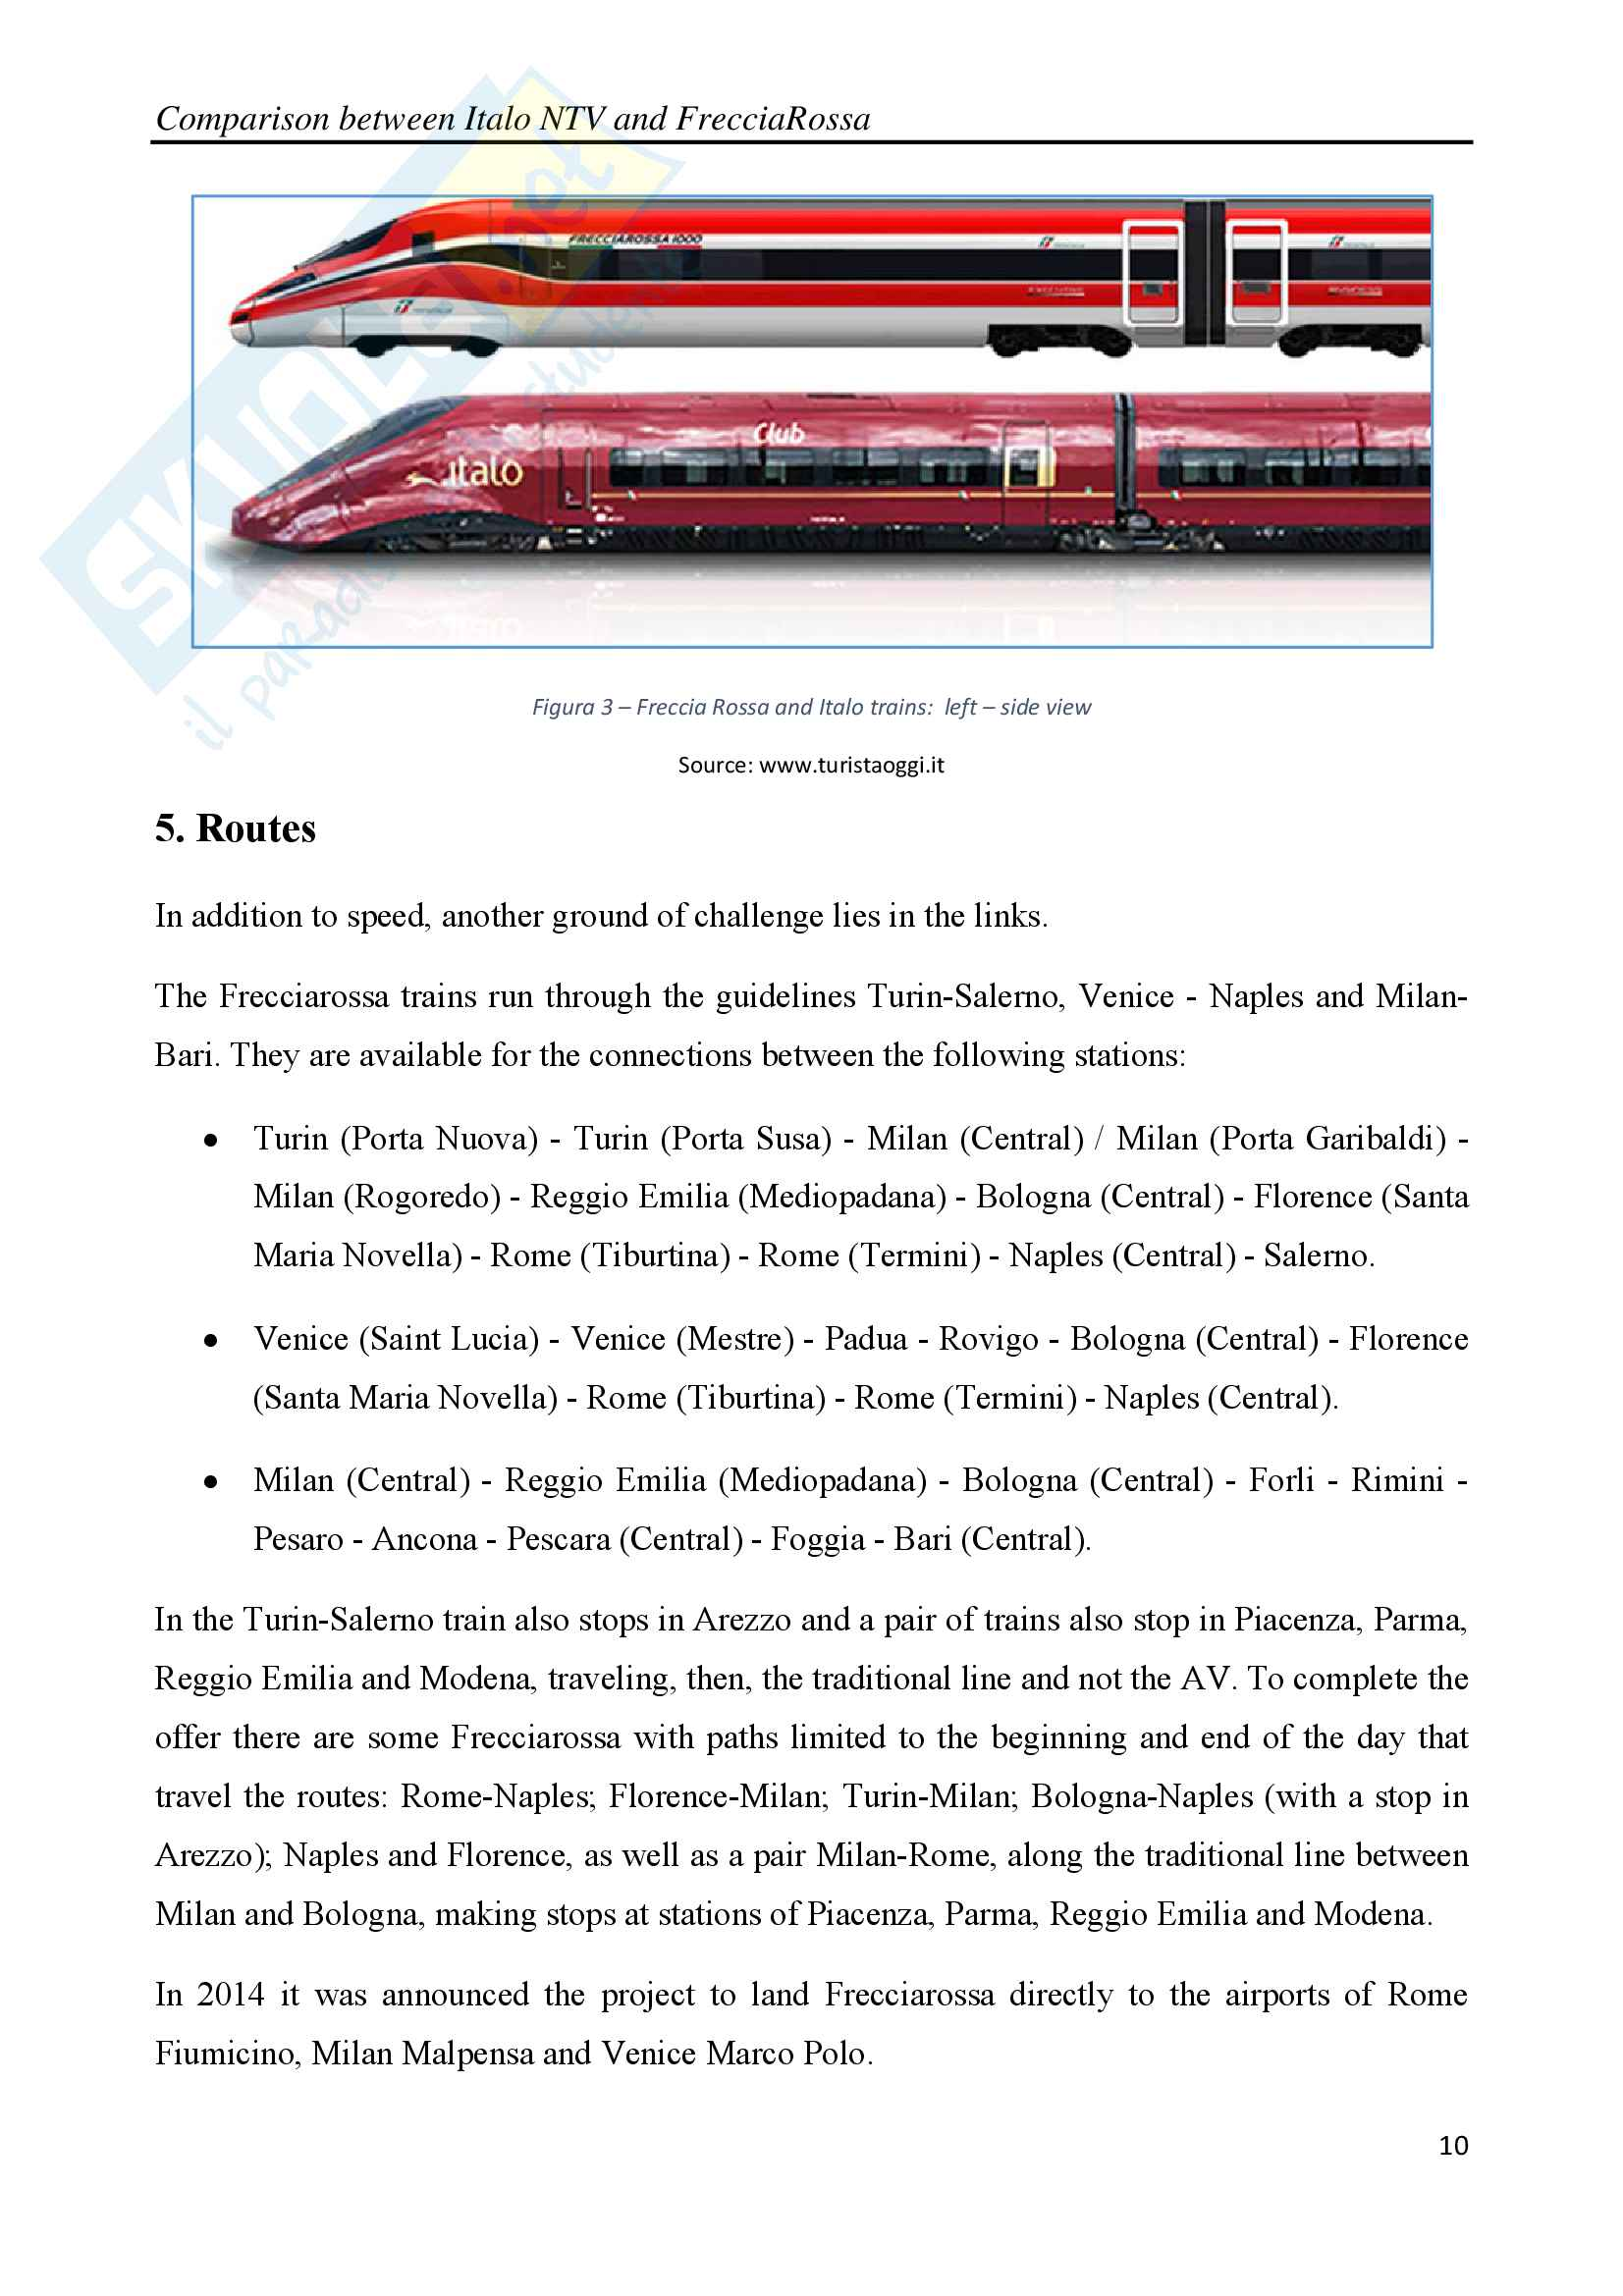 Comparison between Italo NTV and FrecciaRossa with legal, social and economic considerations Pag. 11